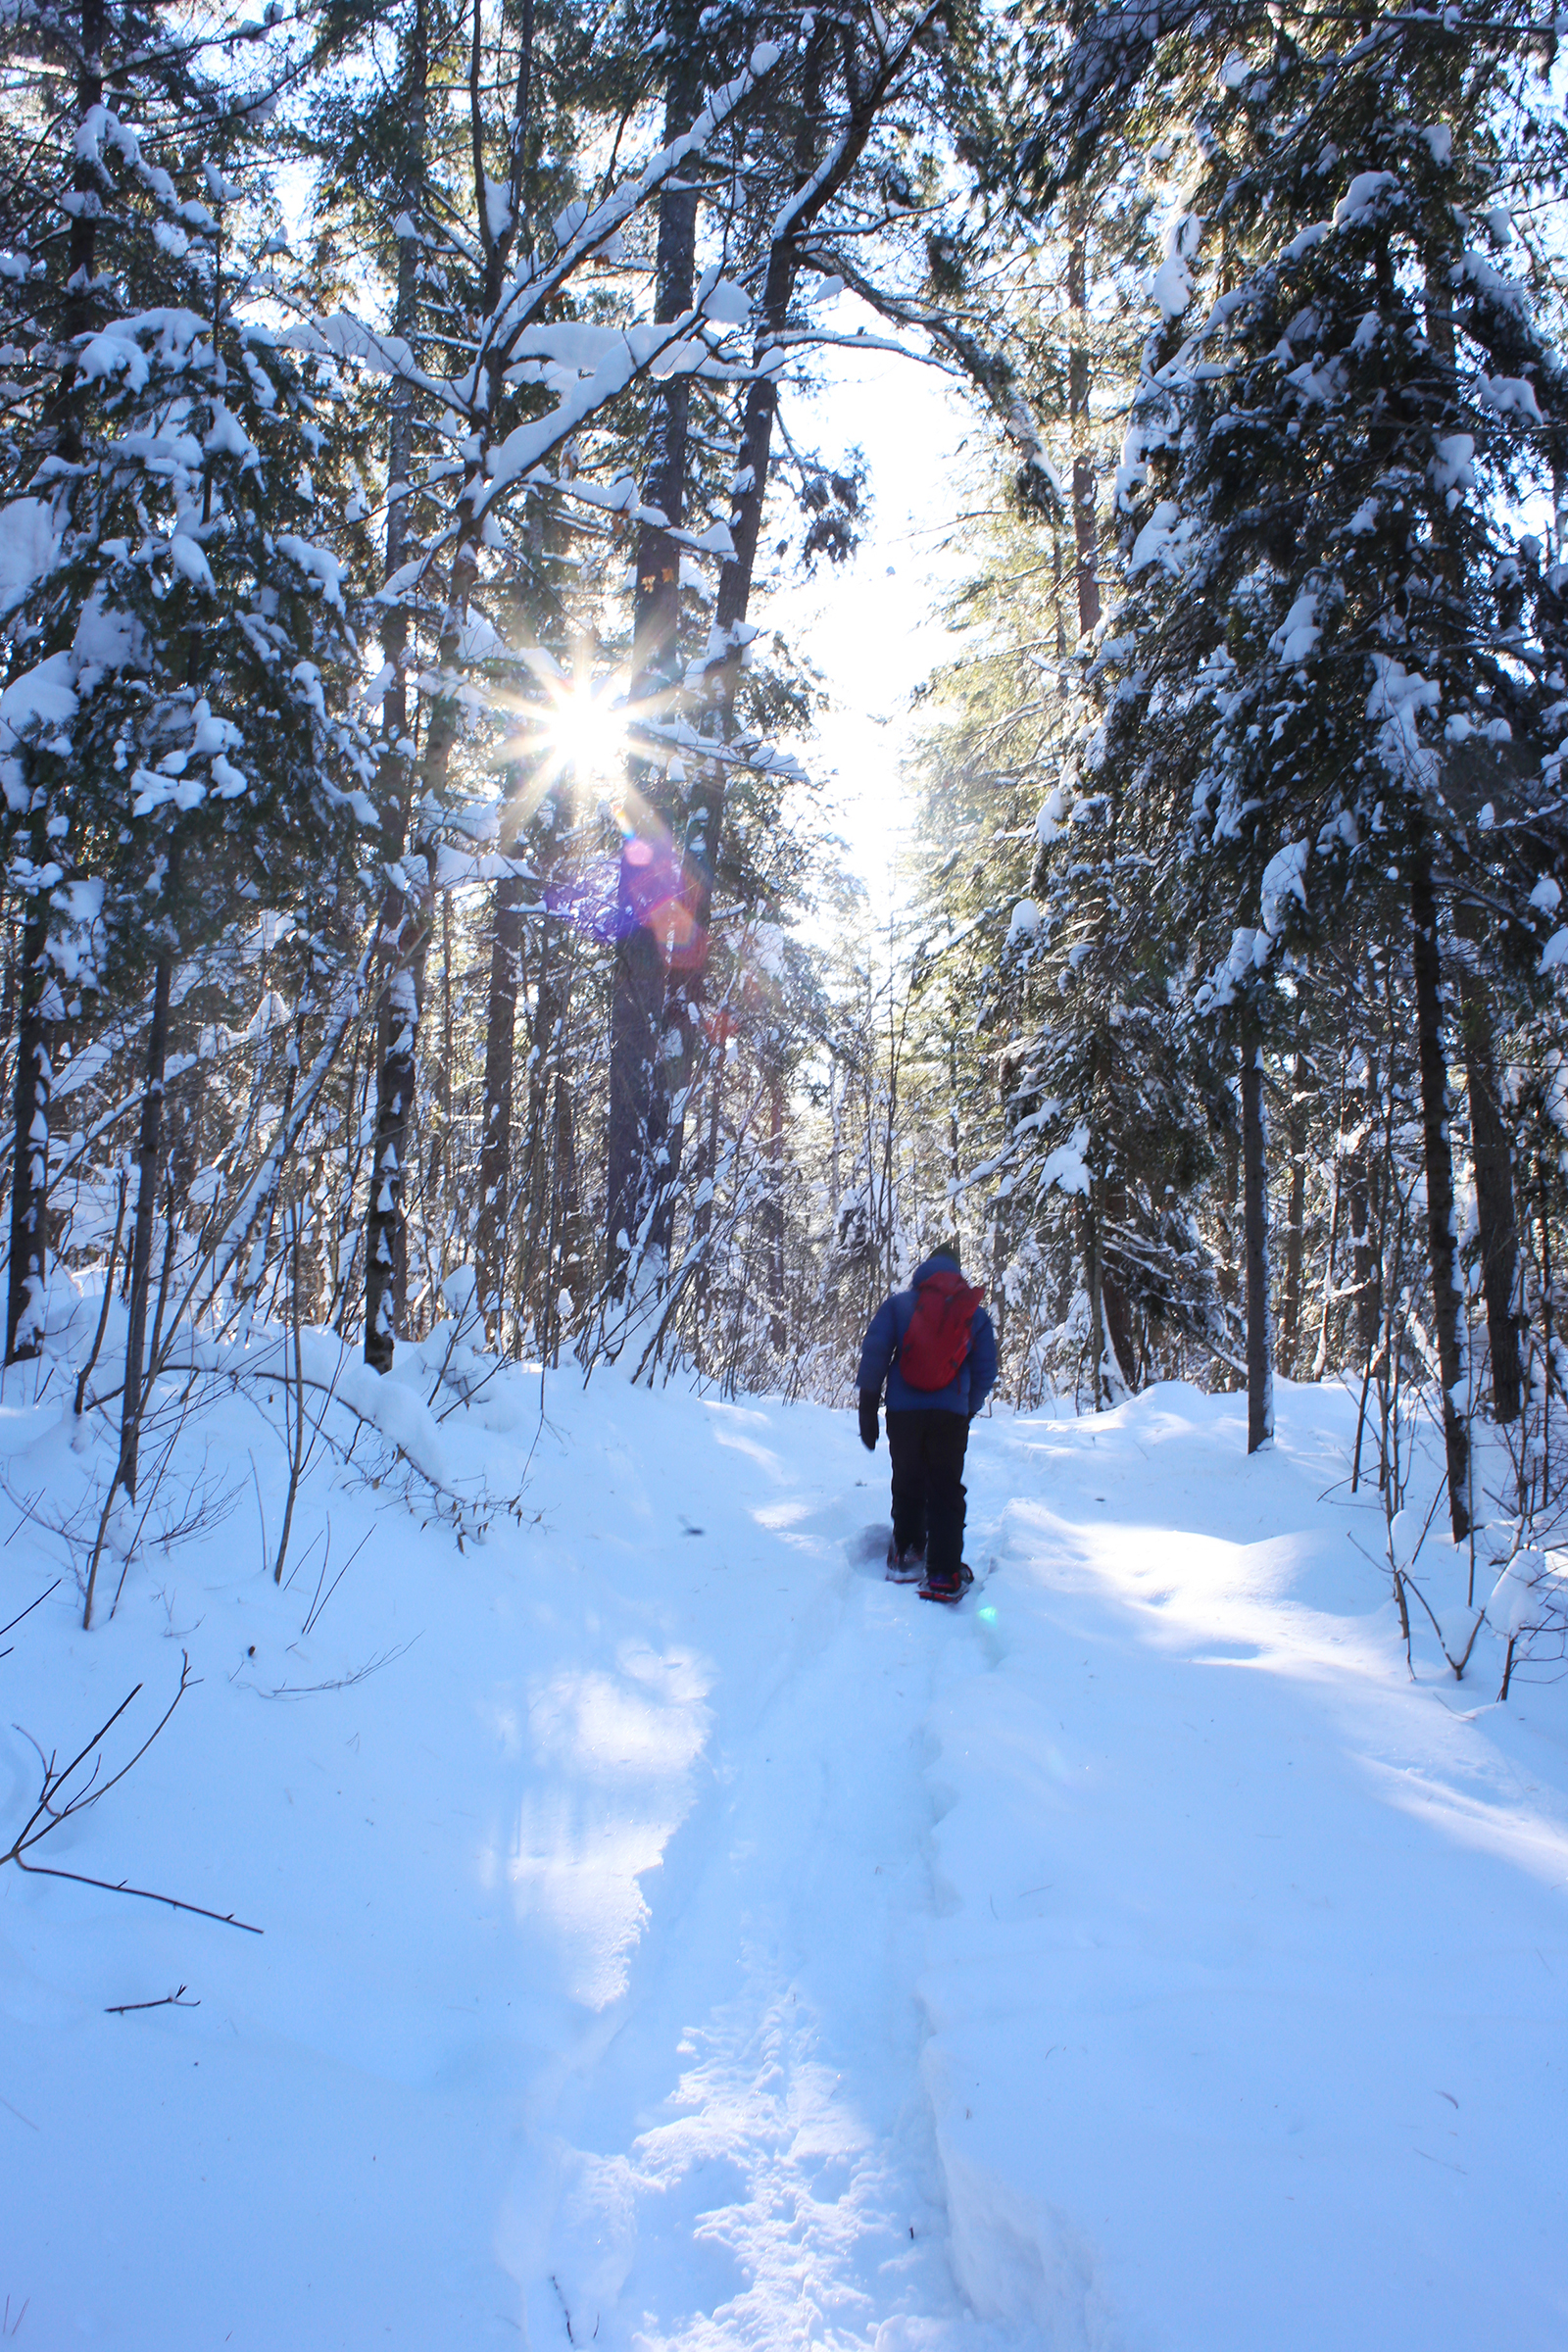 A man with a red backpack snowshoes up a snowy trail as the sun shines through the trees